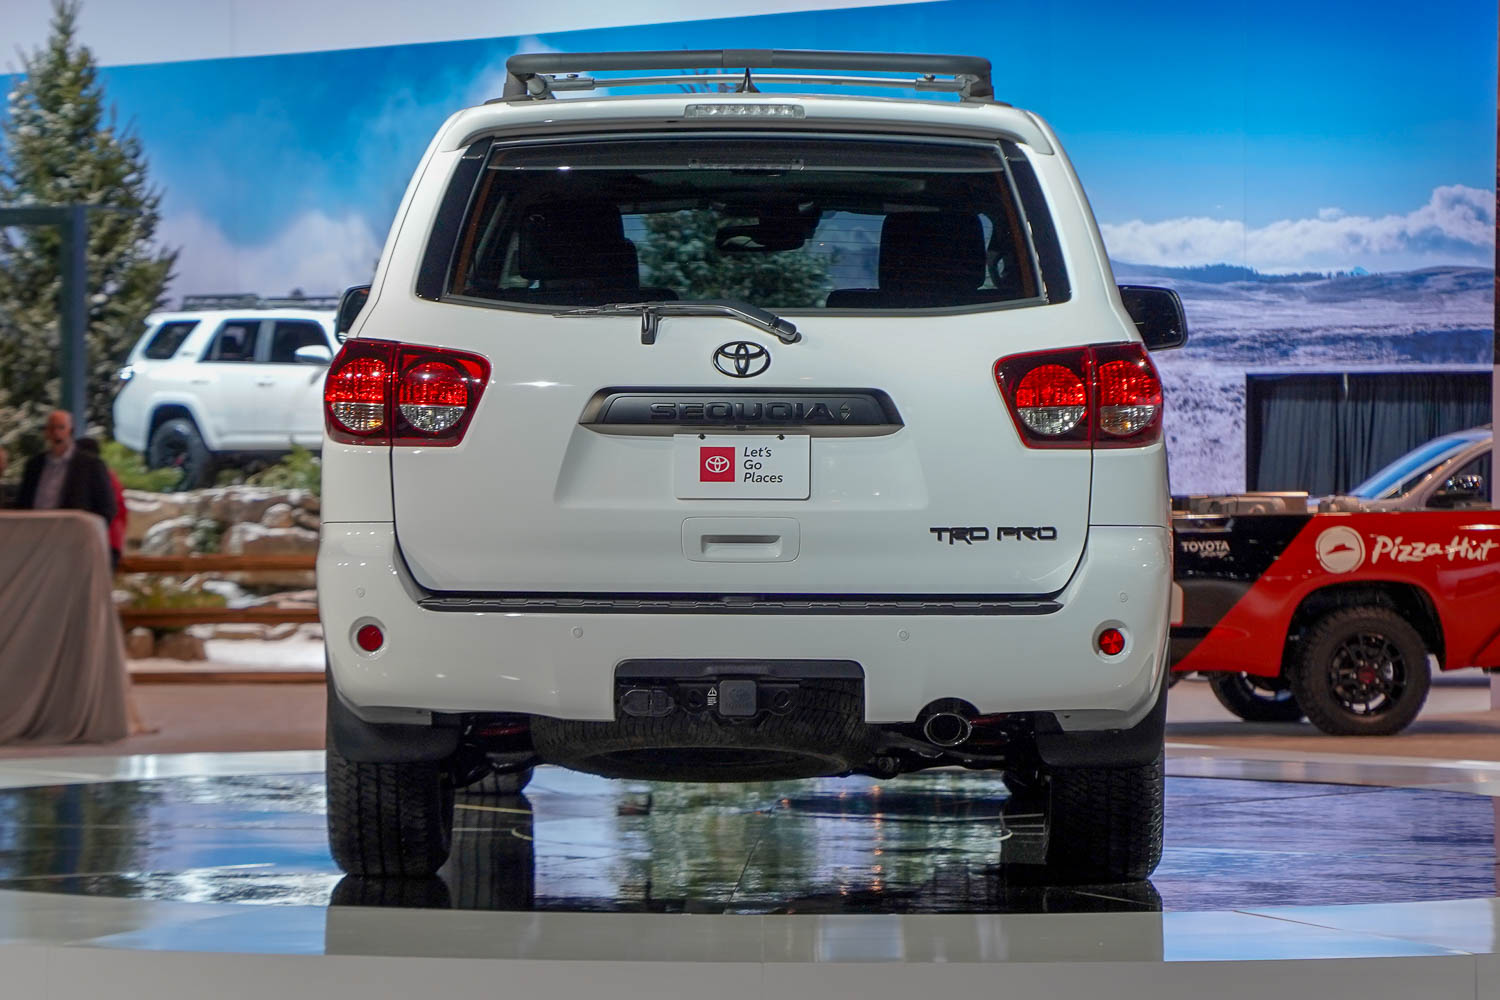 2019 Toyota Sequoia - rear view